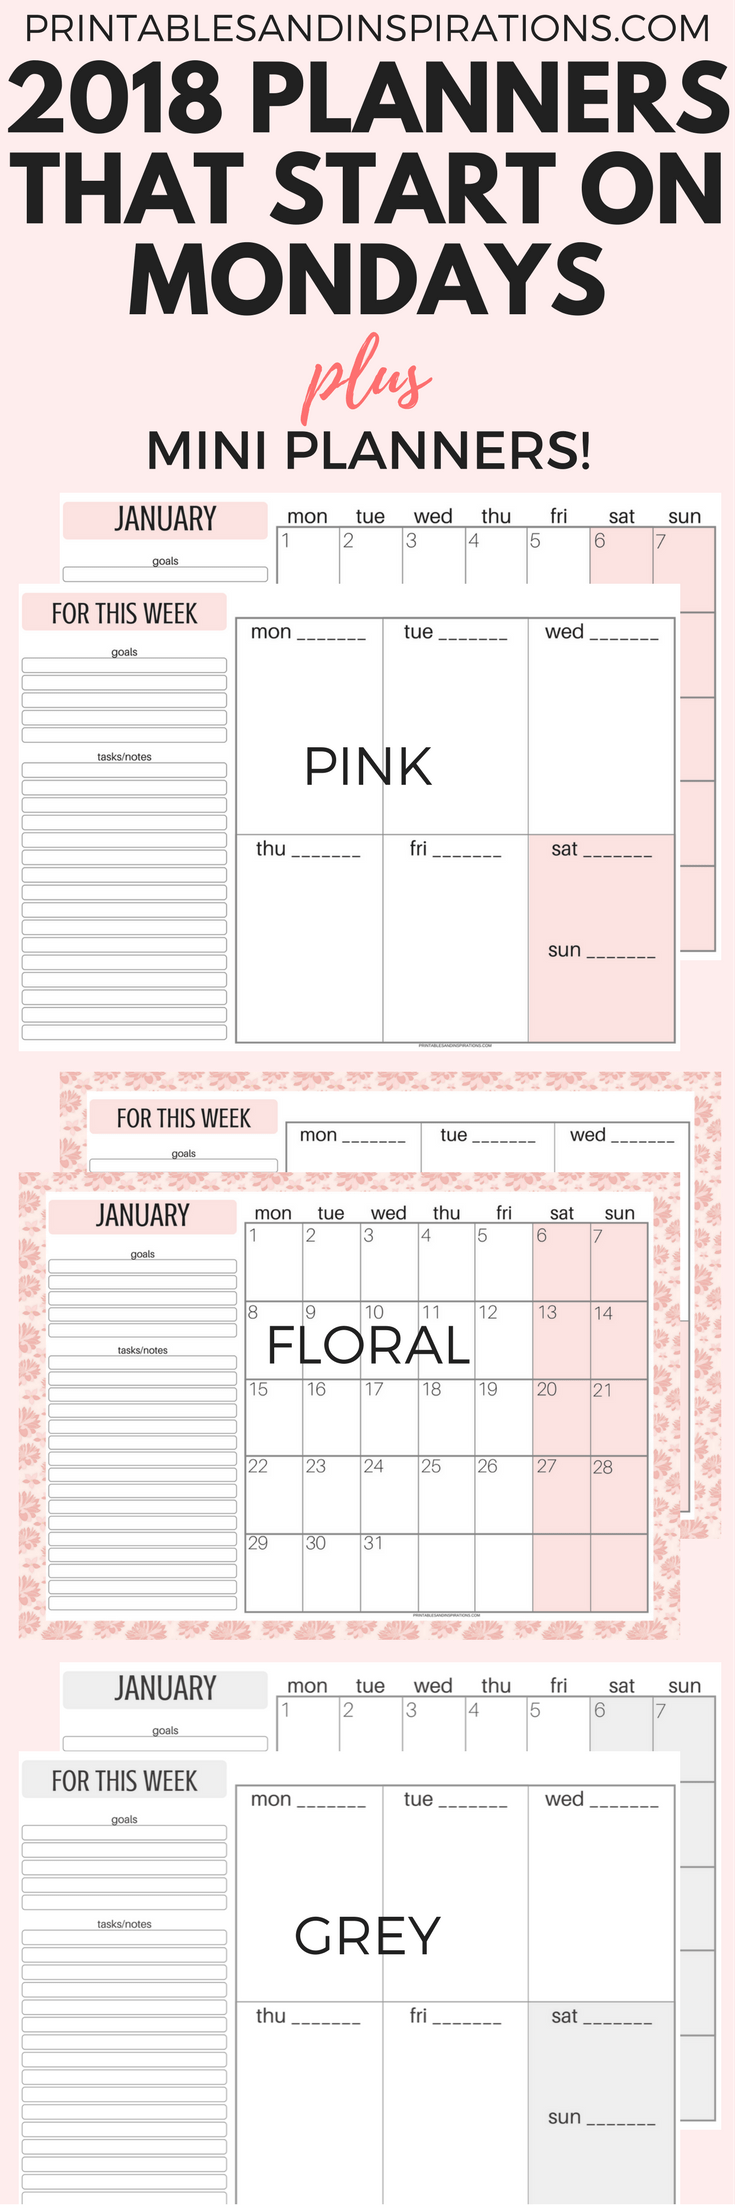 Weekly Calendar Monday To Sunday : Free printable monday calendar week starts on